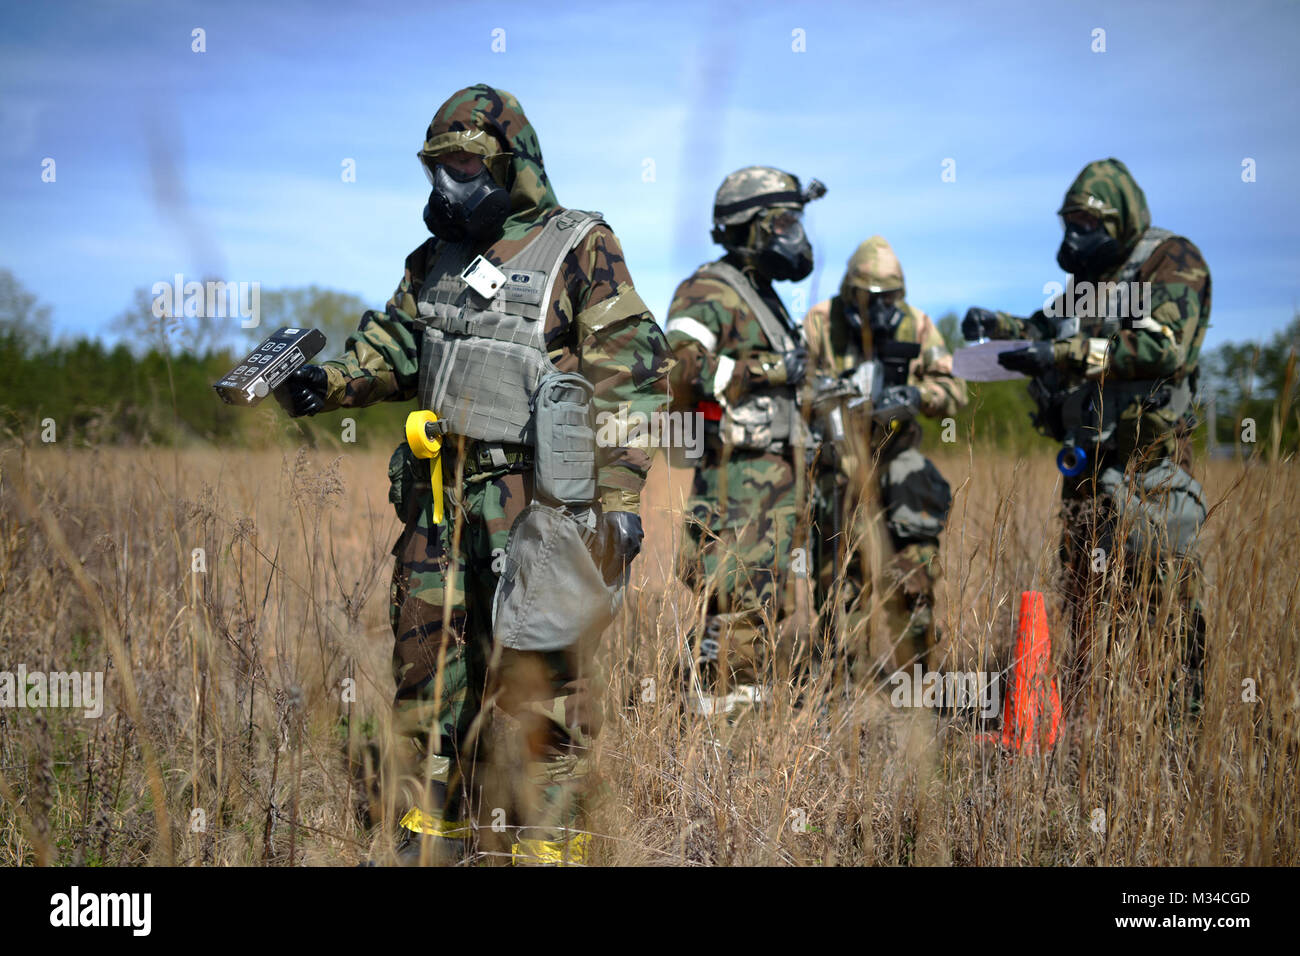 PERRY, GA - Air National Guard Emergency Managers search for radioactive material during a Global Dragon training - Stock Image